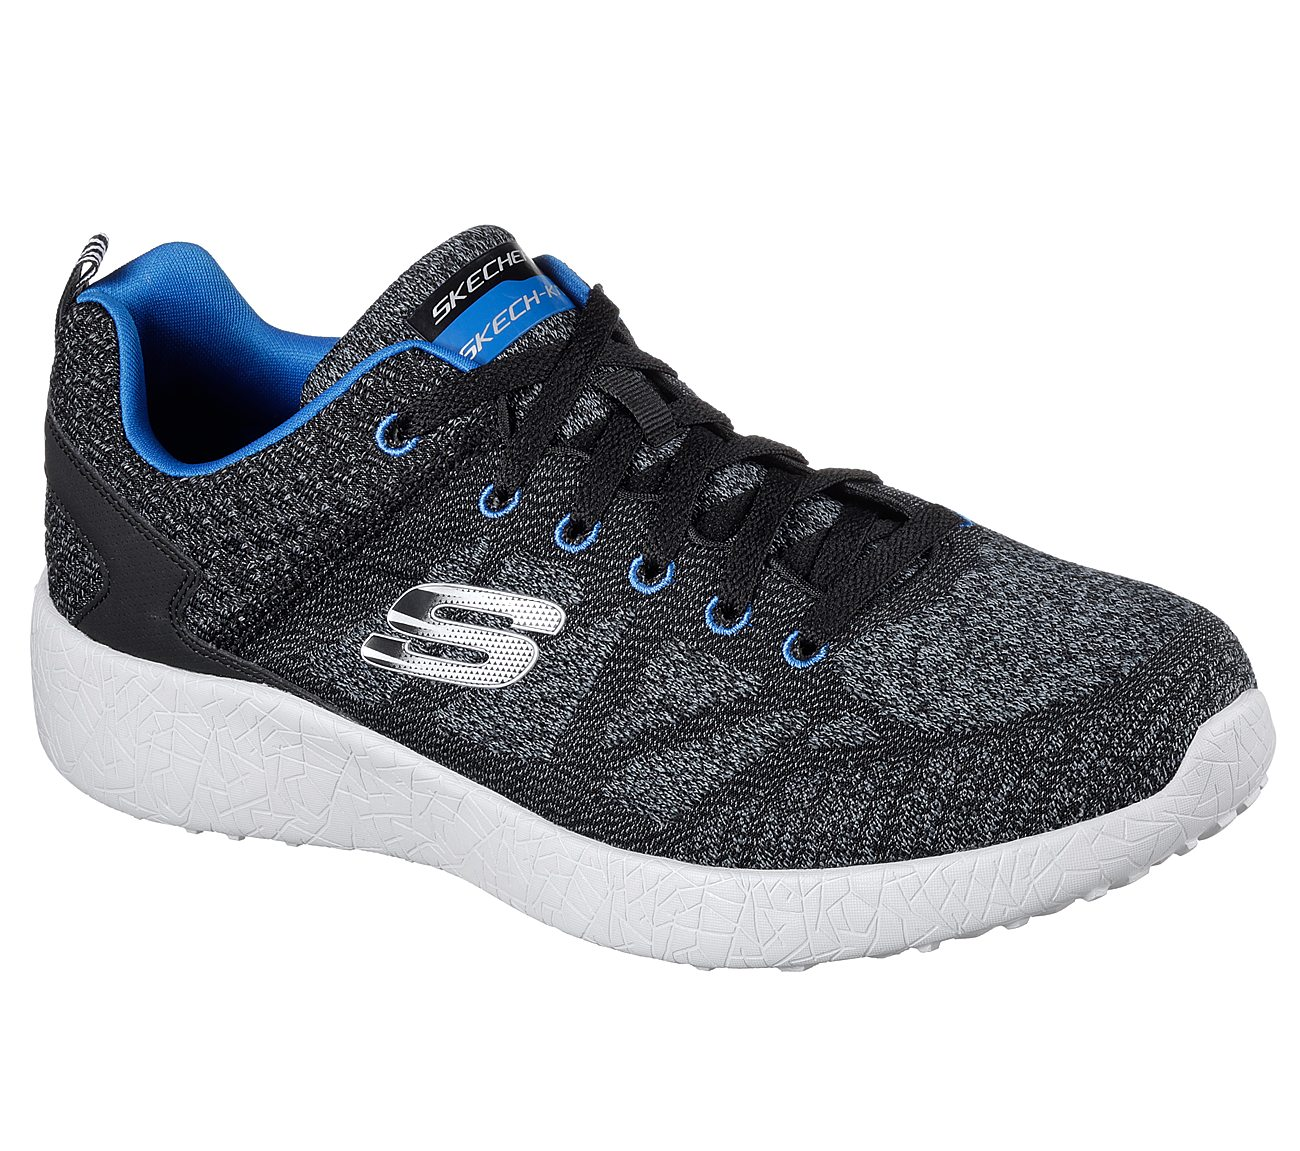 New Bargains on Skechers Sport Women's Just Relax Fashion